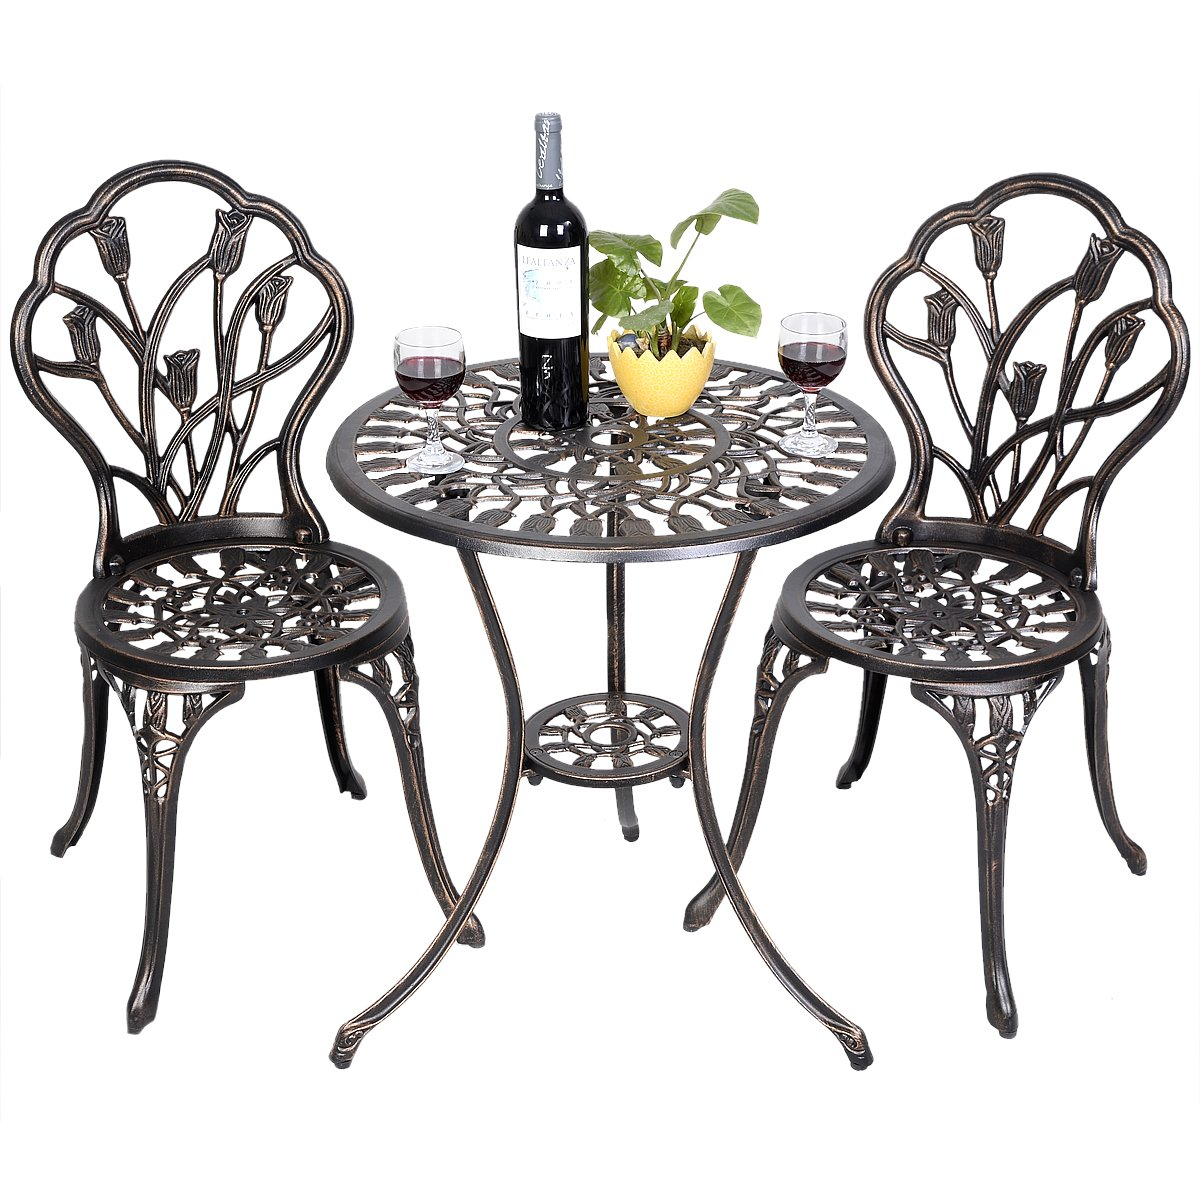 fds tulip gartenm bel set bistrotisch set 3 tlg aluguss. Black Bedroom Furniture Sets. Home Design Ideas